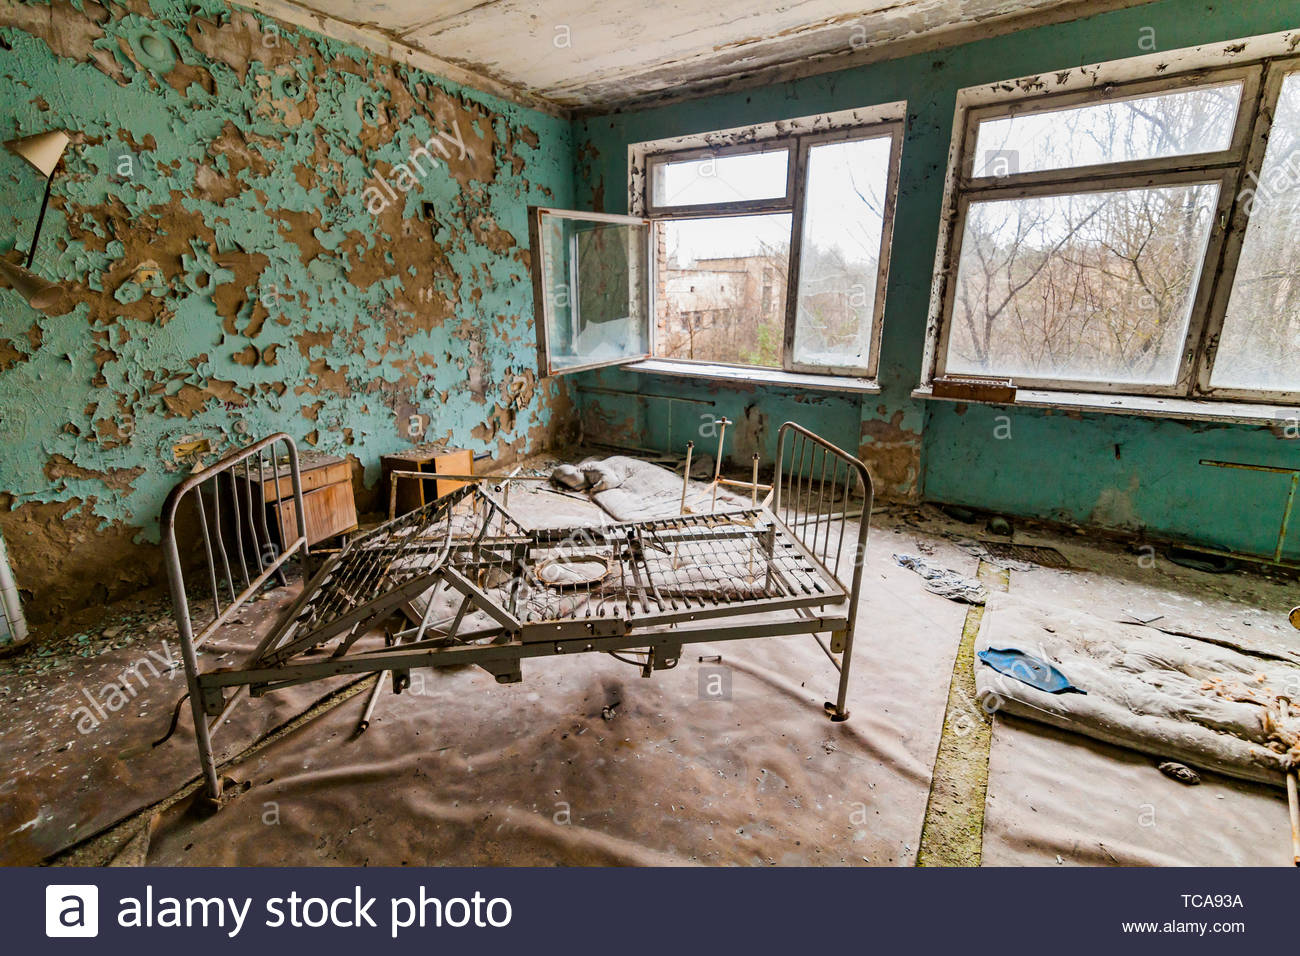 Pripyat, Chernobyl exclusion zone. The interior of the ward in a hospital in an abandoned city. - Stock Image